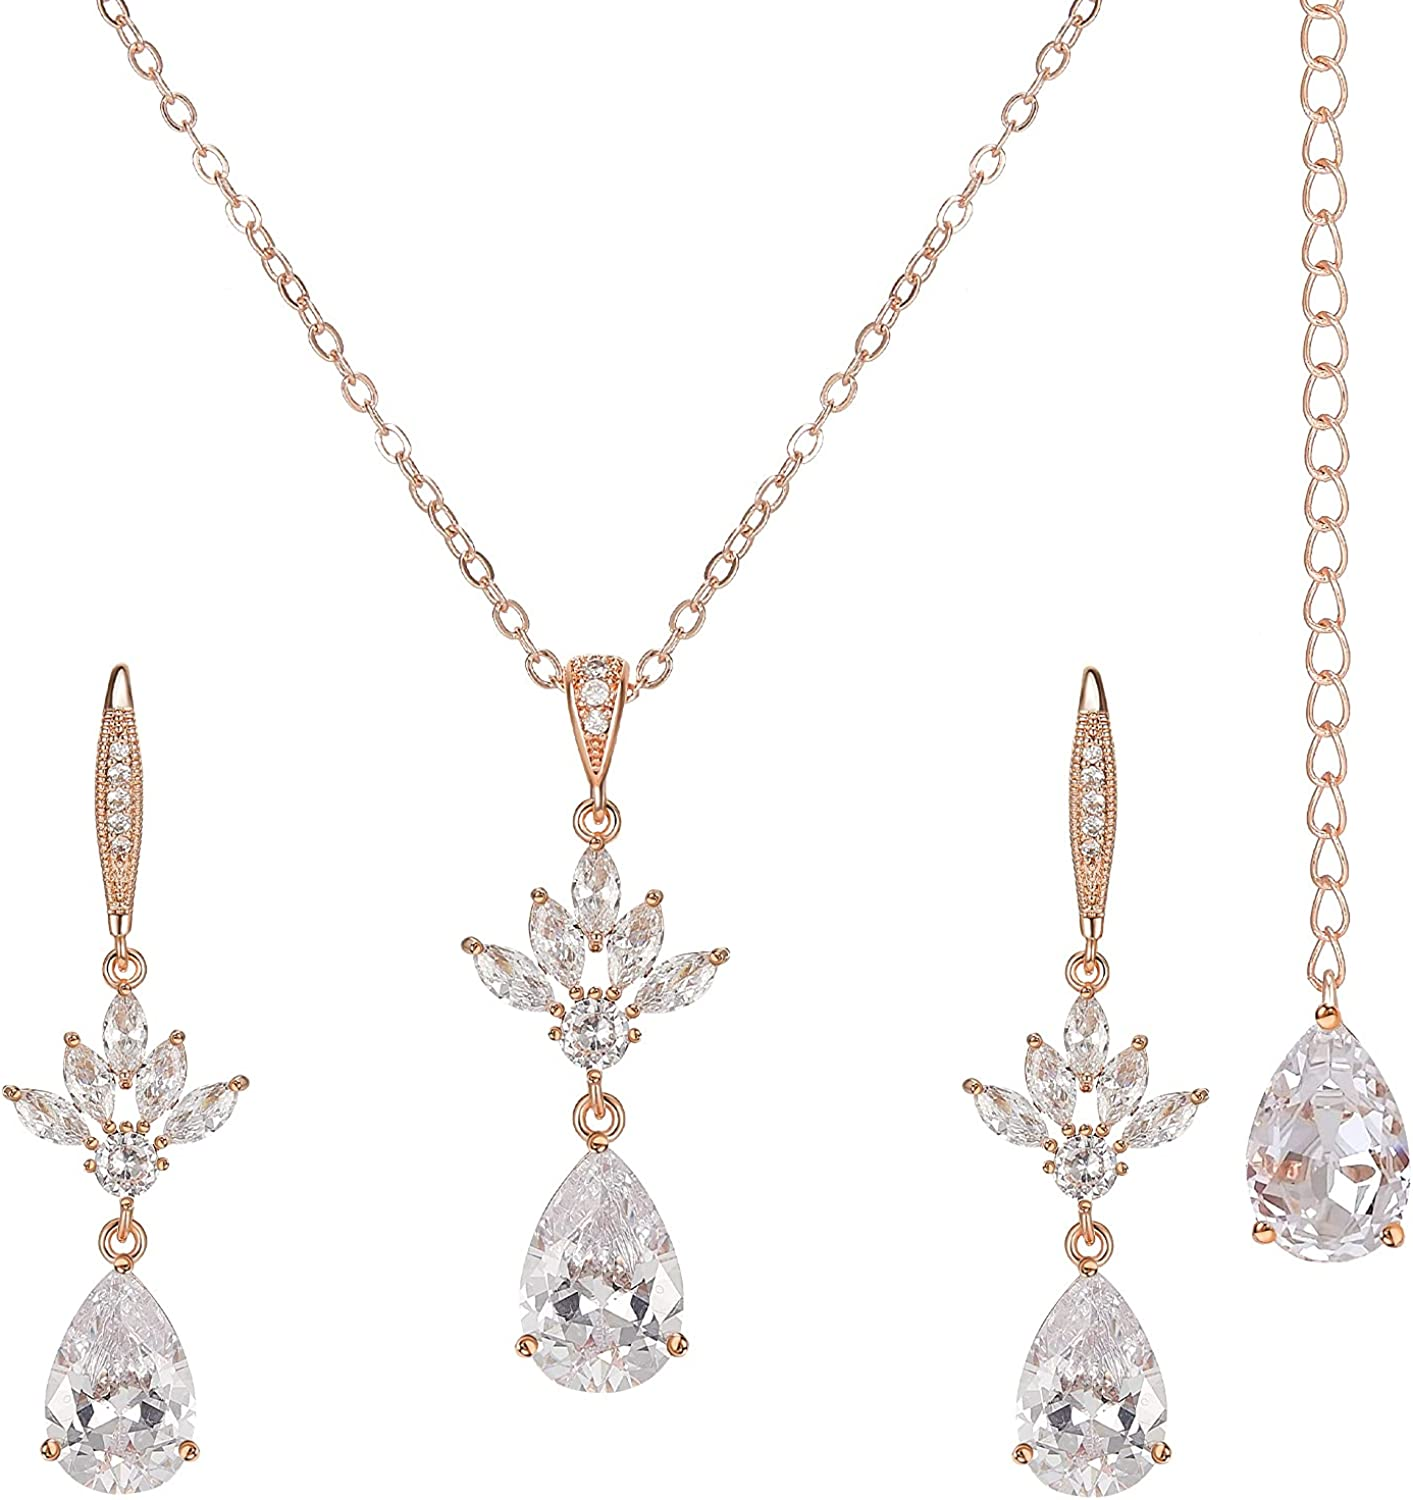 SWEETV Crystal All items free shipping Bridal Wedding Translated Jewelry for Brides Sets Bridesmaid